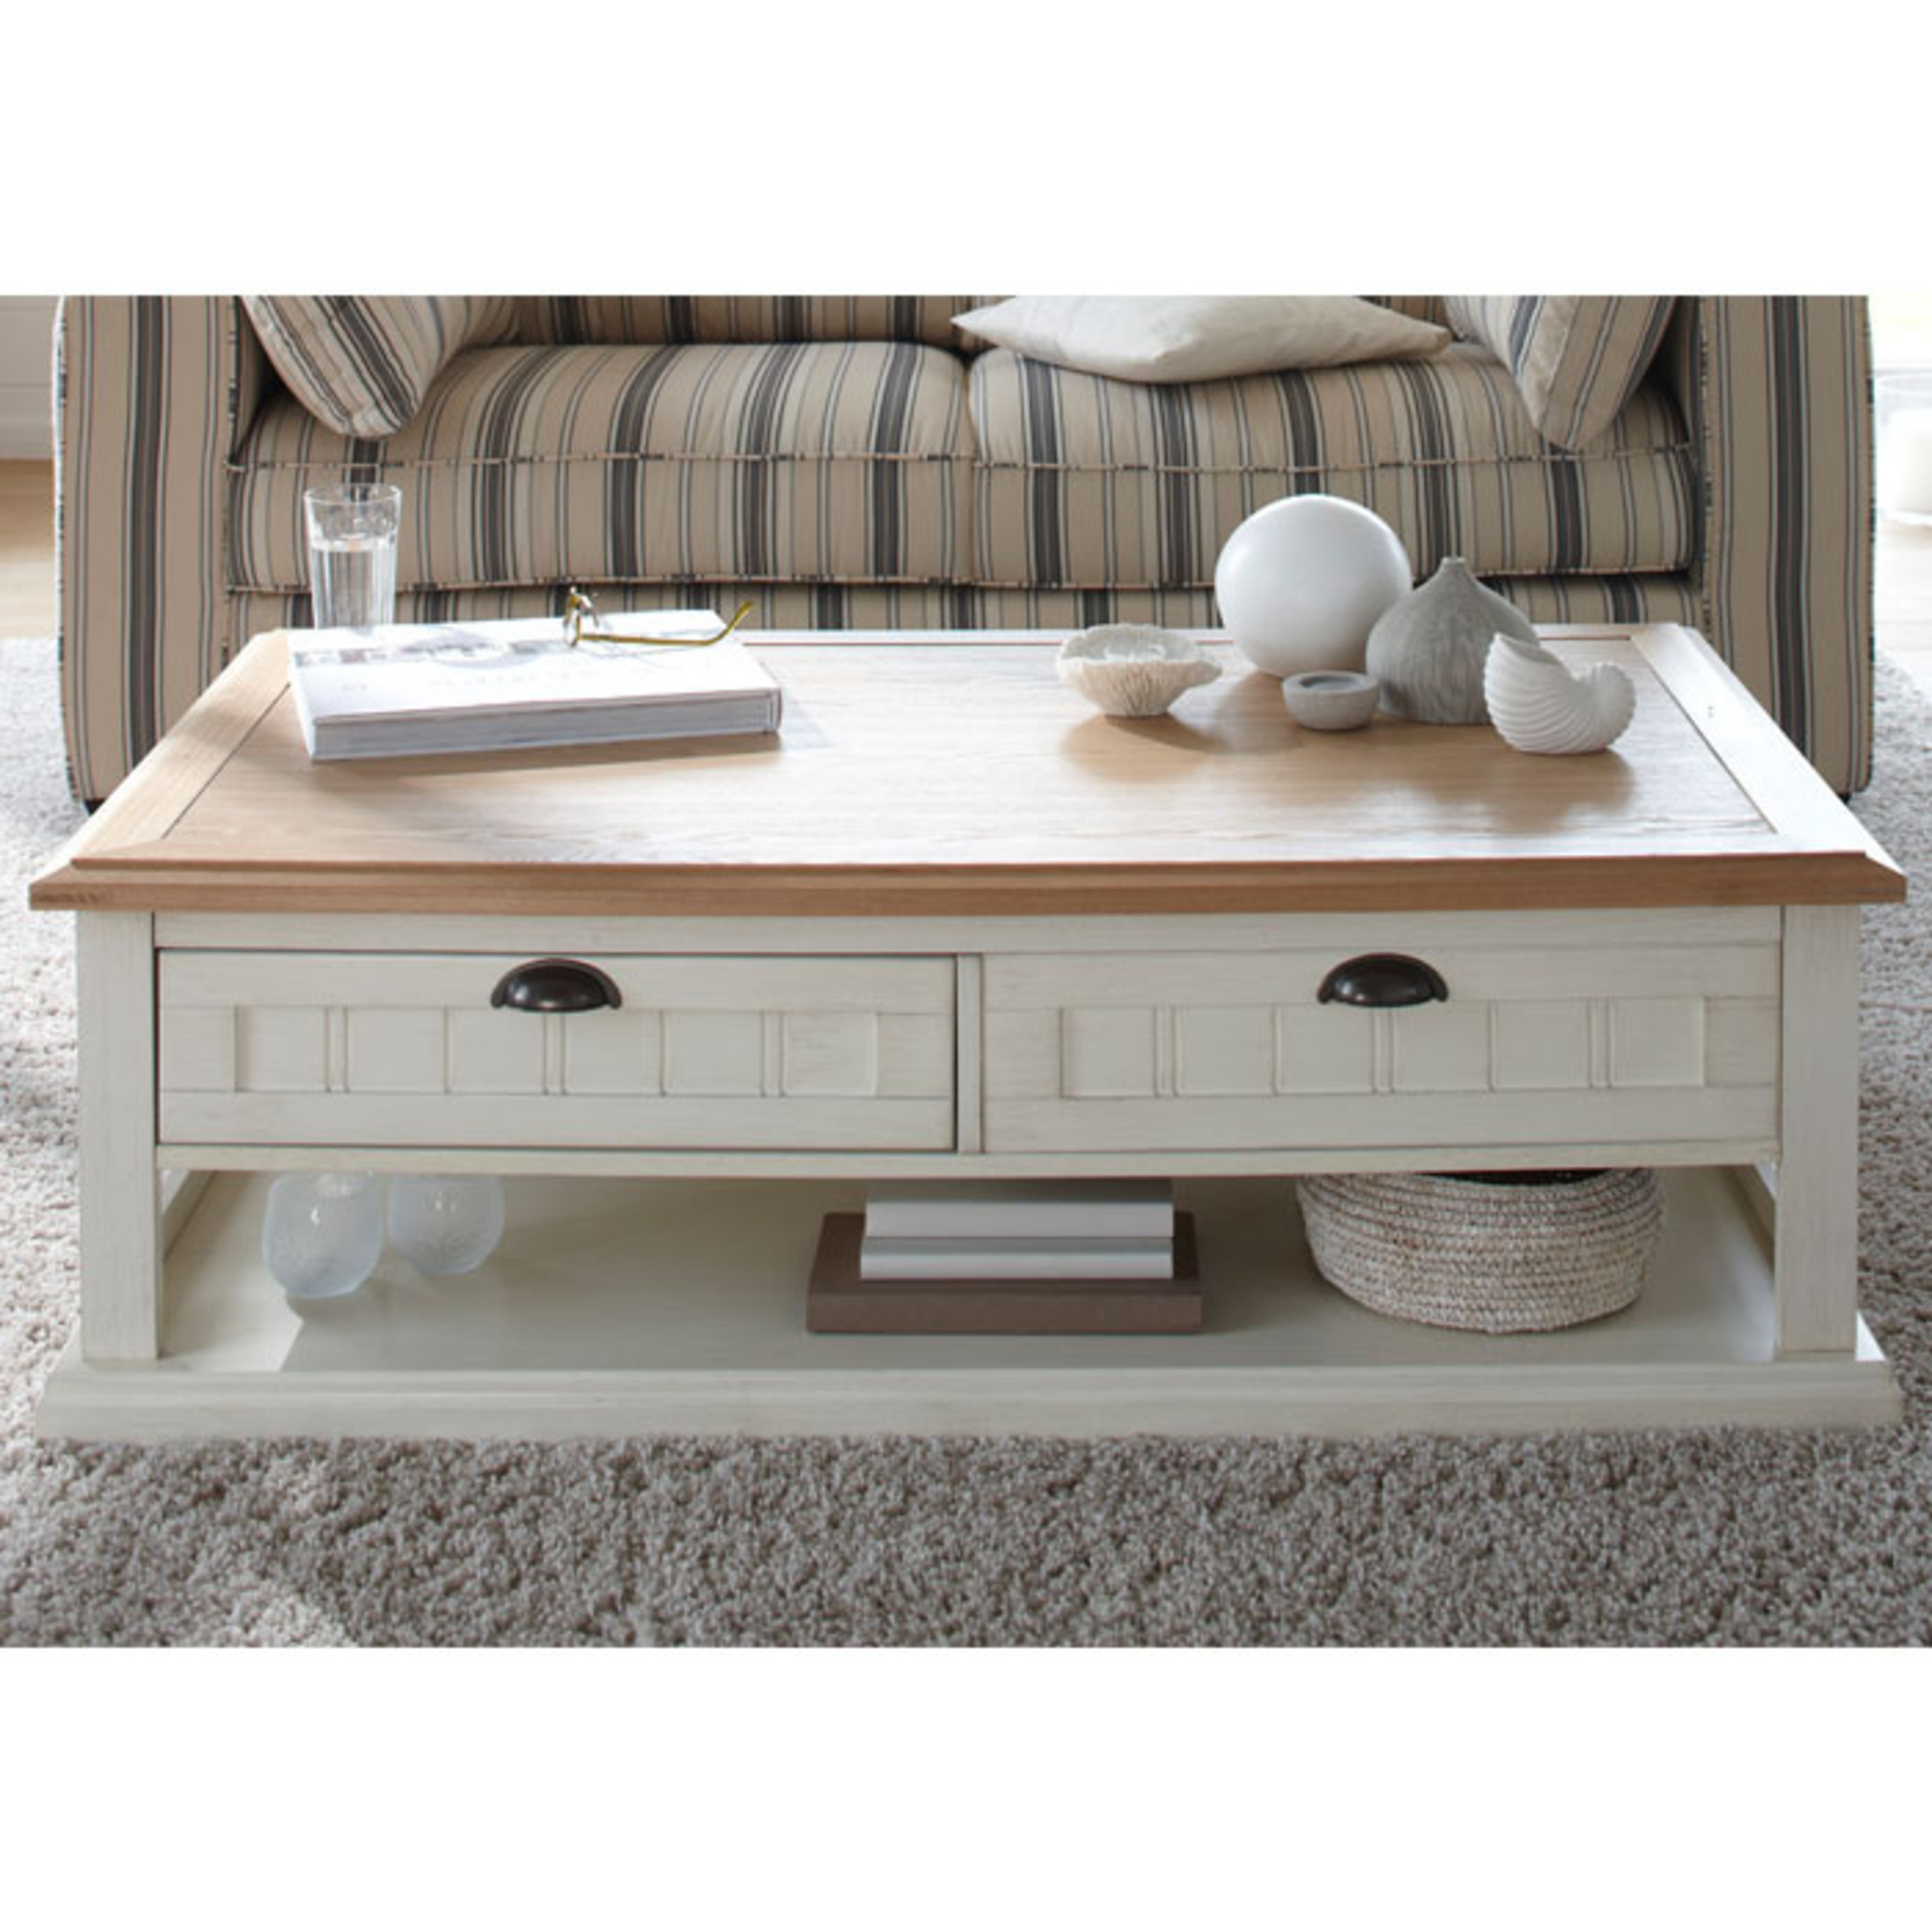 Table basse rectangulaire 2 tiroirs berling blanc patin - Table basse en bois avec tiroir ...